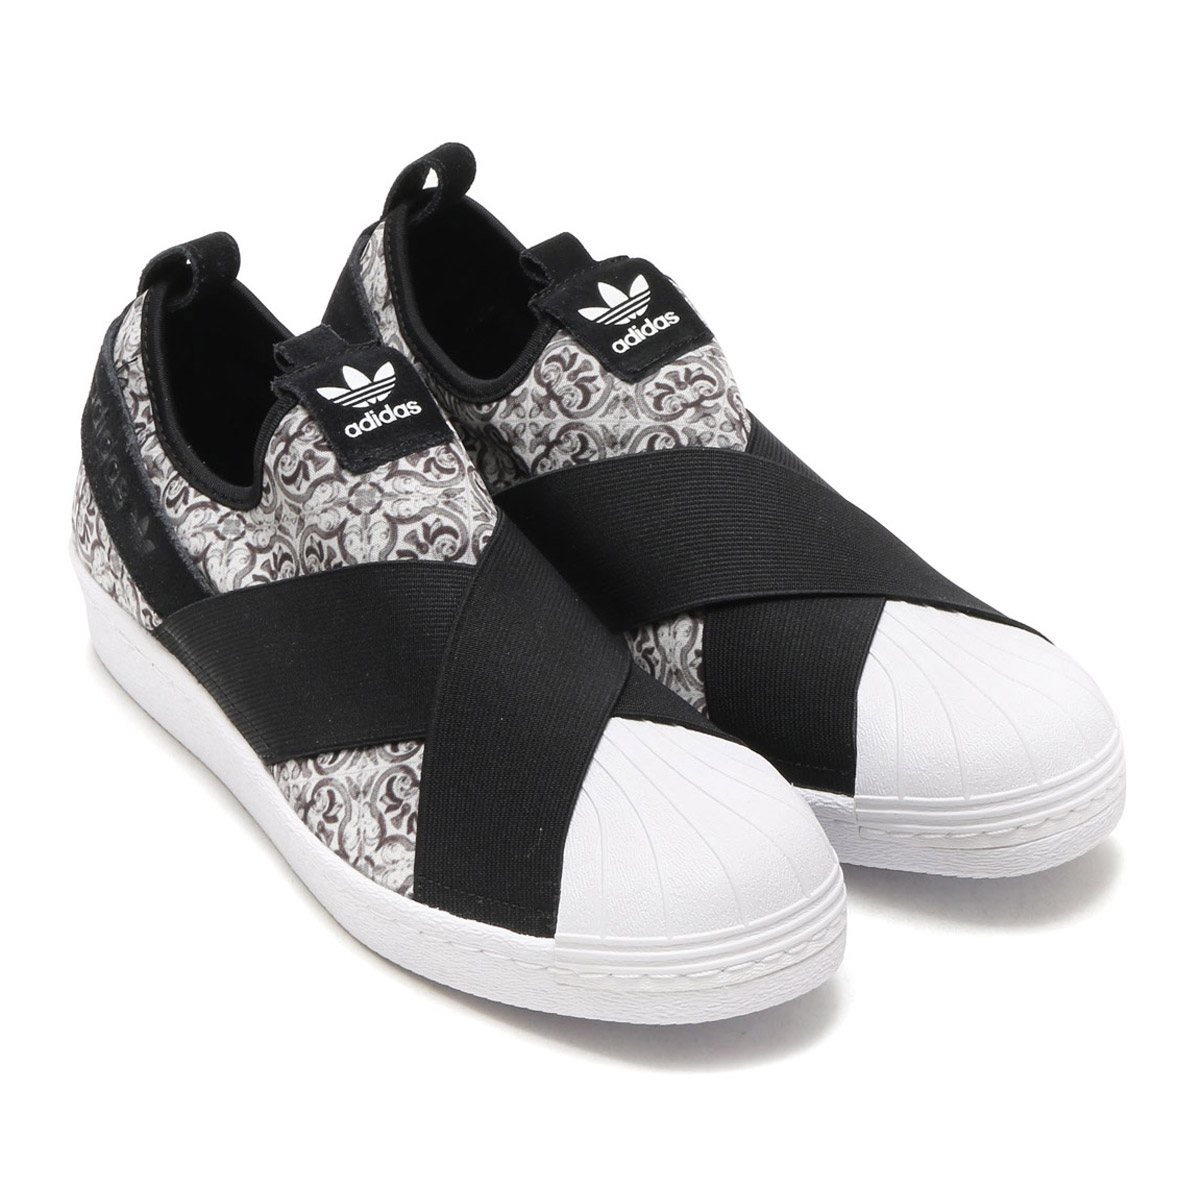 adidas originals wmns superstar slip on sneakers sport shoes athletic shoes and sneakers. Black Bedroom Furniture Sets. Home Design Ideas